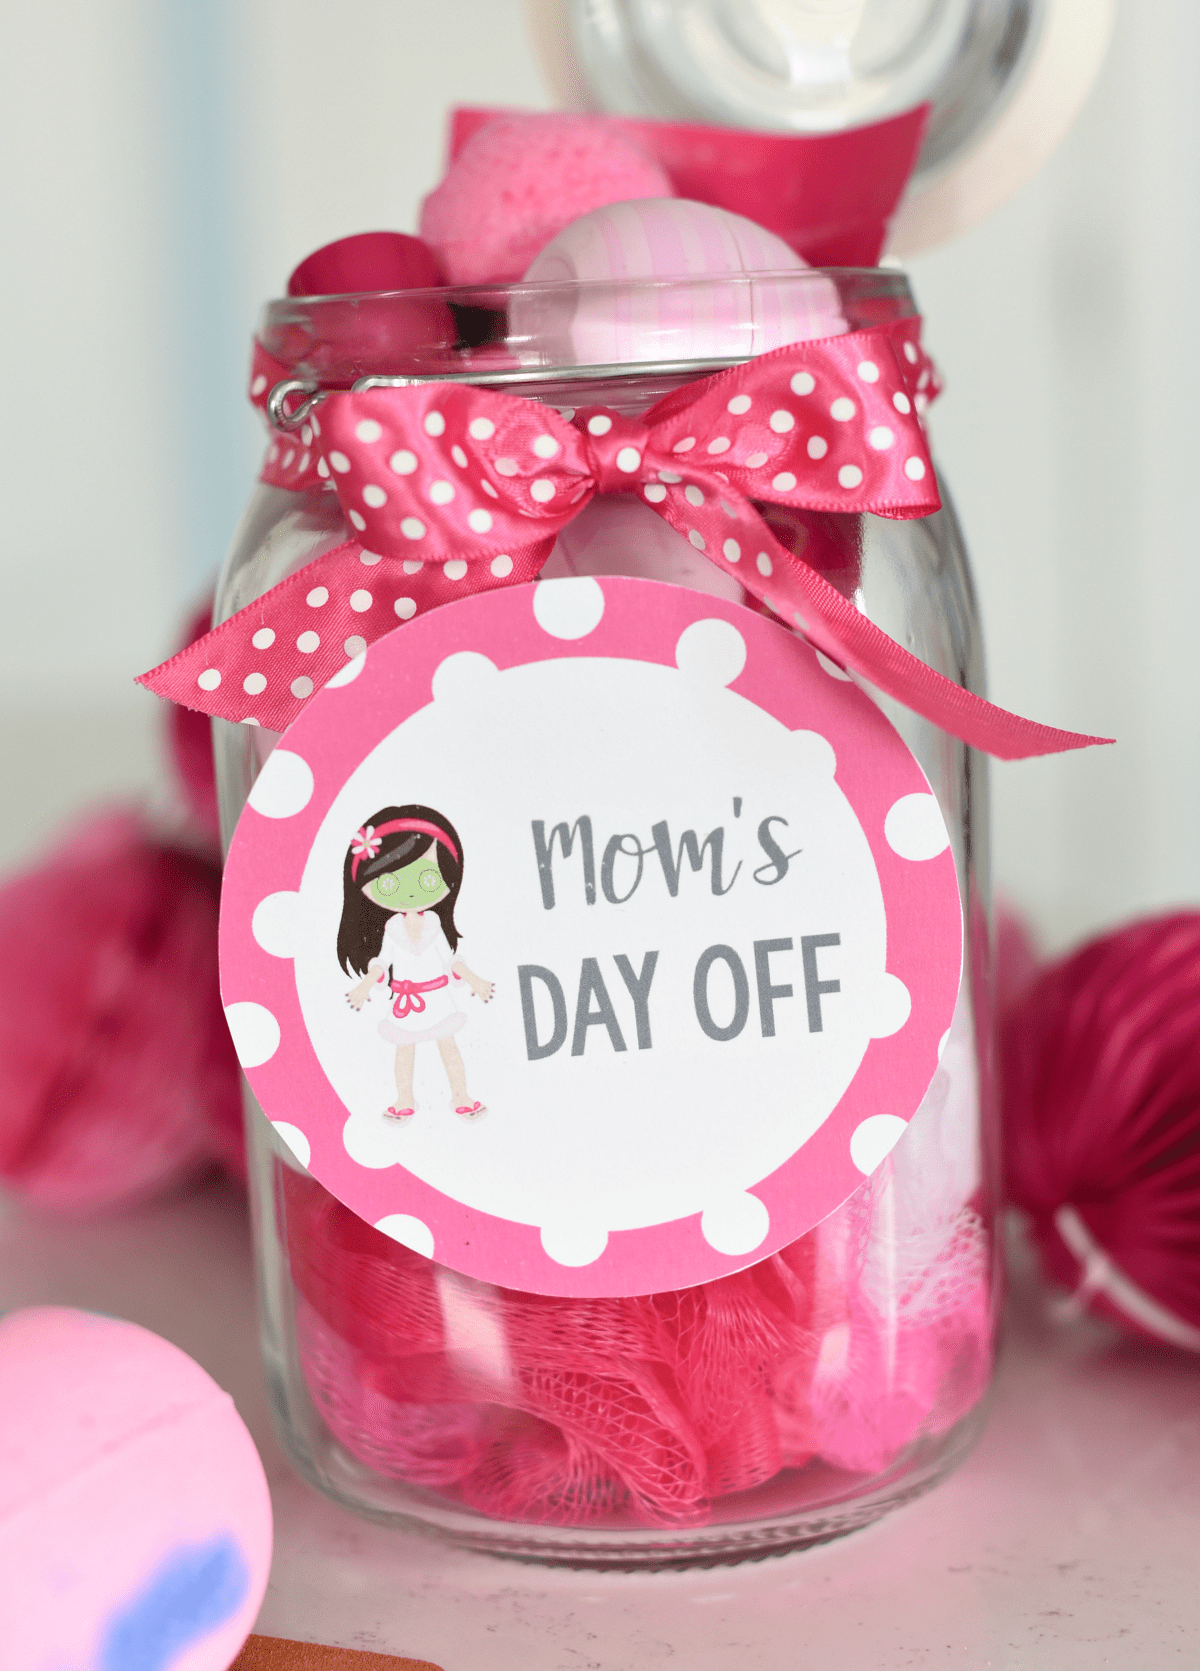 Spa in a Jar-Mother's Day Gift Idea. Fill a jar with bath bombs and lotions, lip balms, face masks and chocolate and add this cute tag for a great gift idea for Mom! #mothersday #mothersdayideas #giftsformom